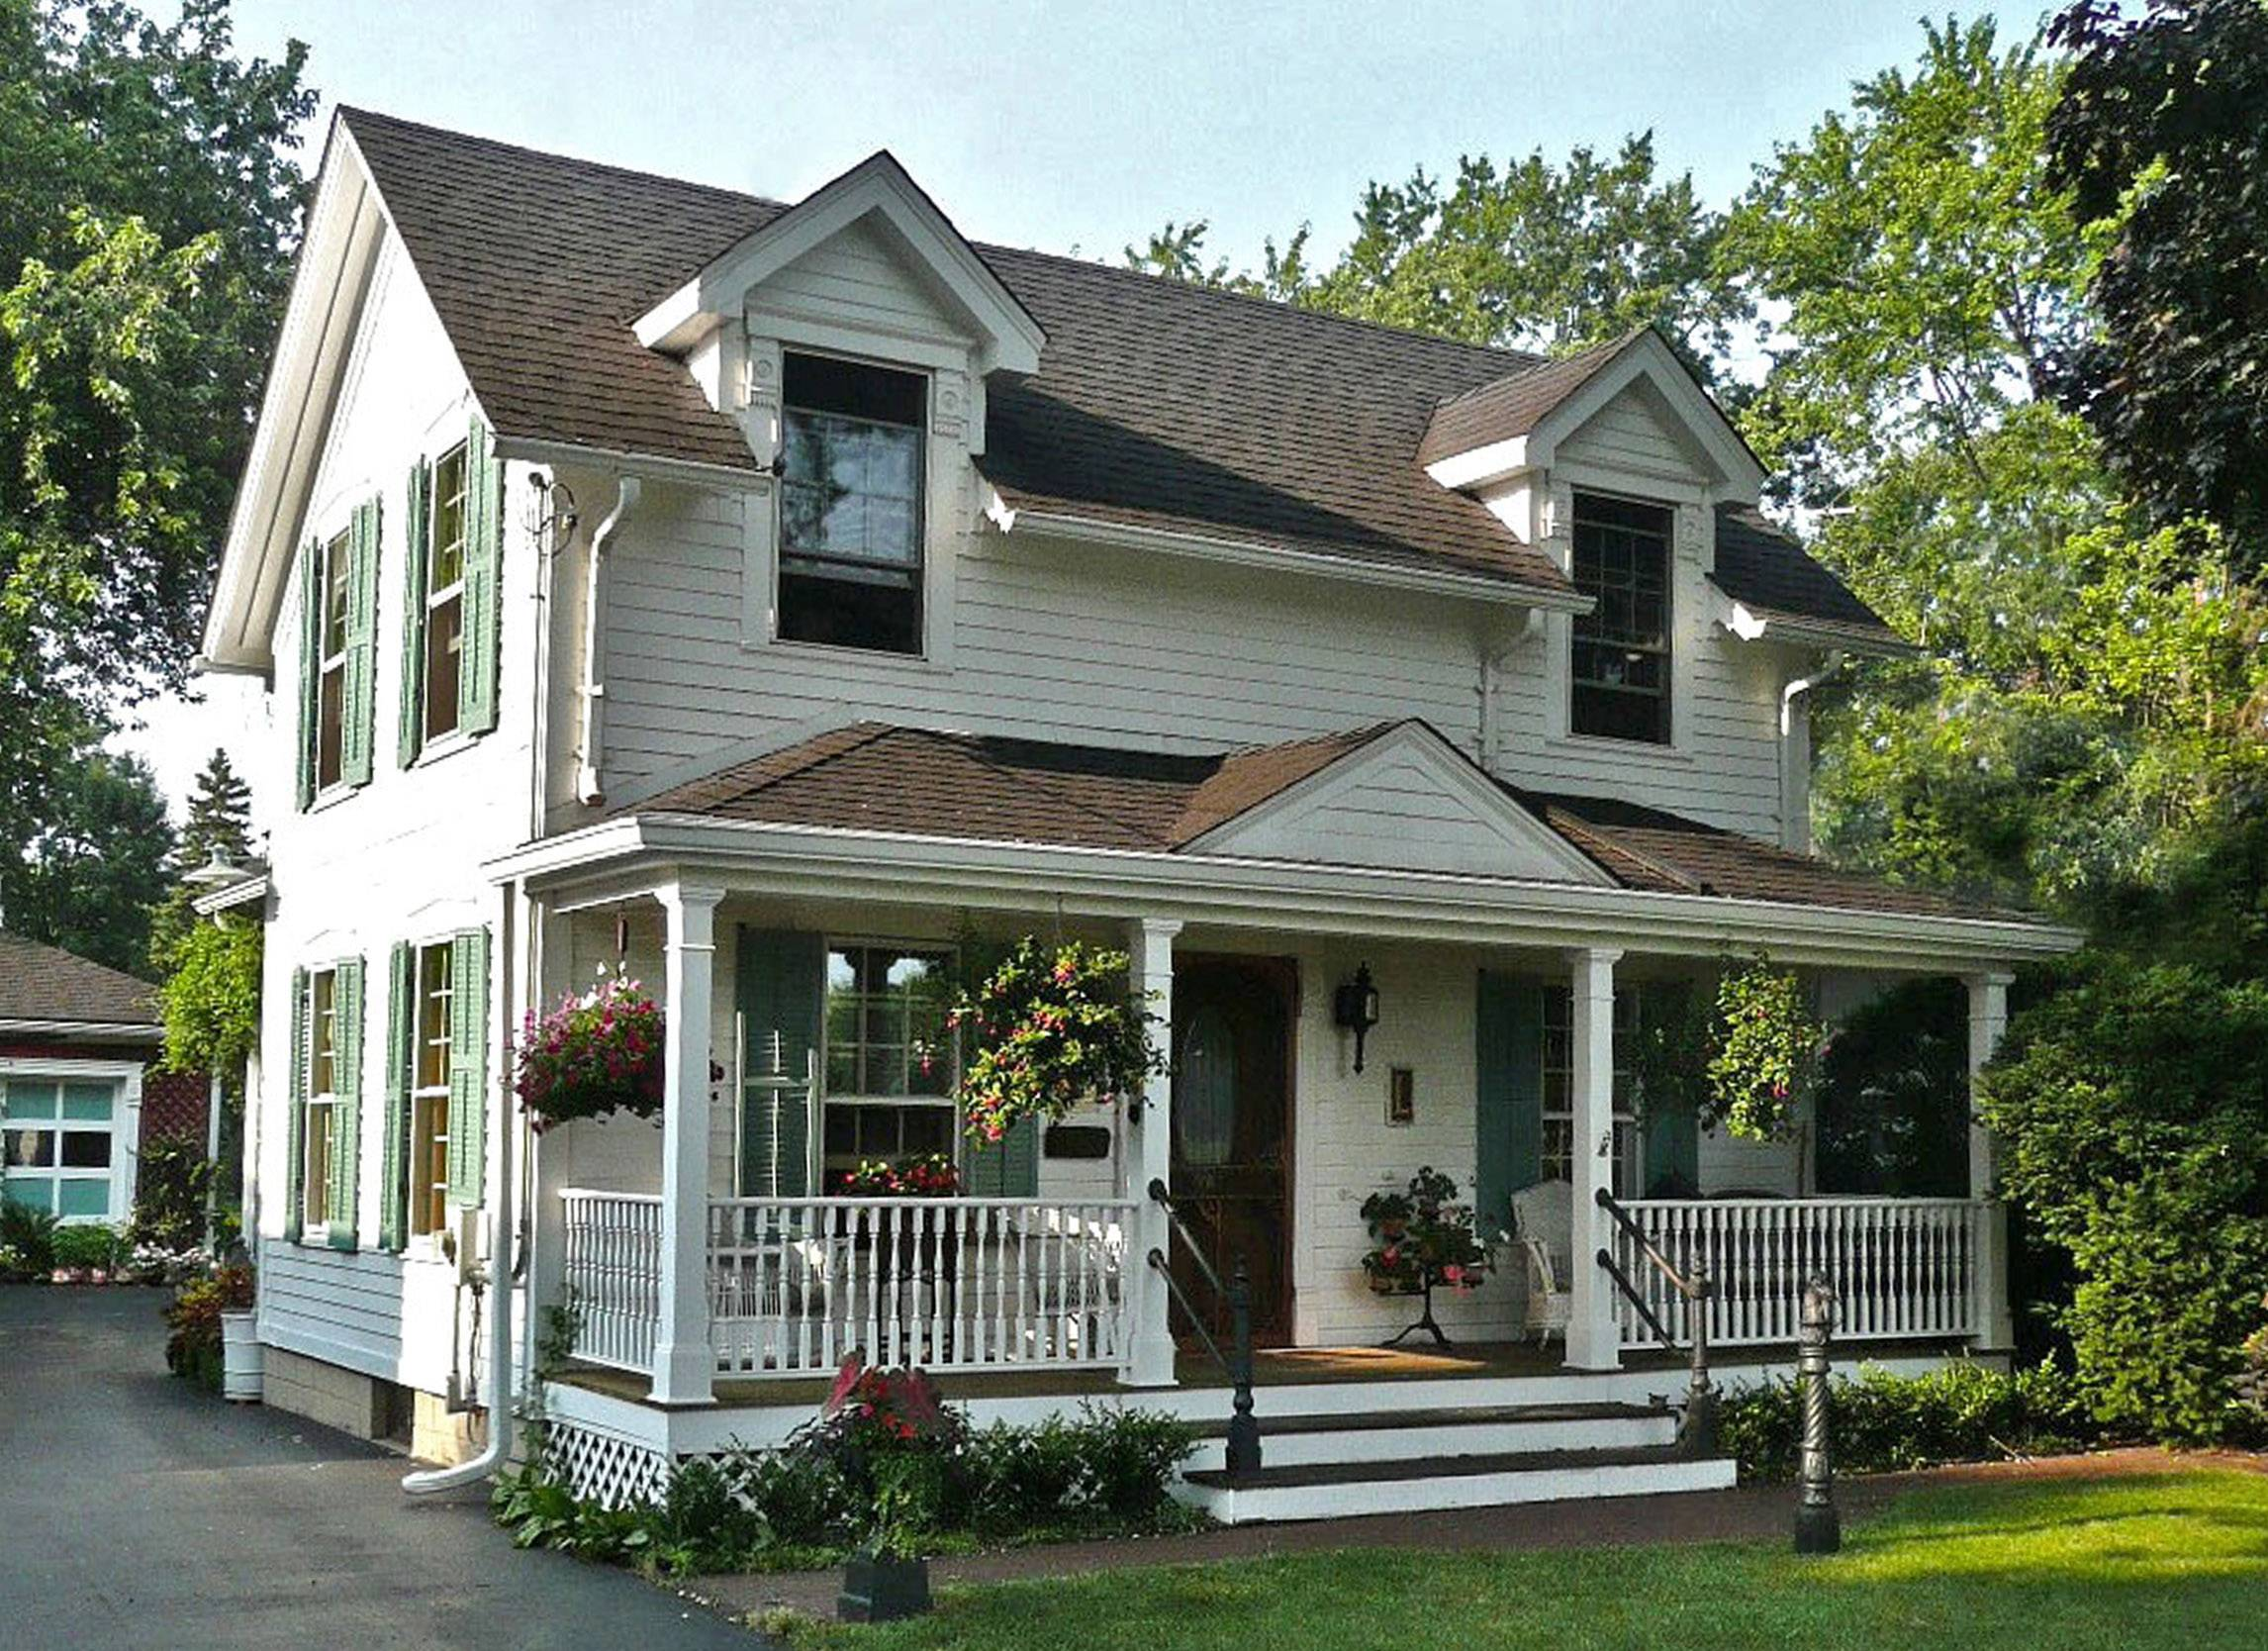 Originally a farm house on Milwaukee and Sunnyside avenues, this home at 402 W. Lincoln Ave. in Libertyville will be part of MainStreet Libertyville's Historic House Walk on June 7.